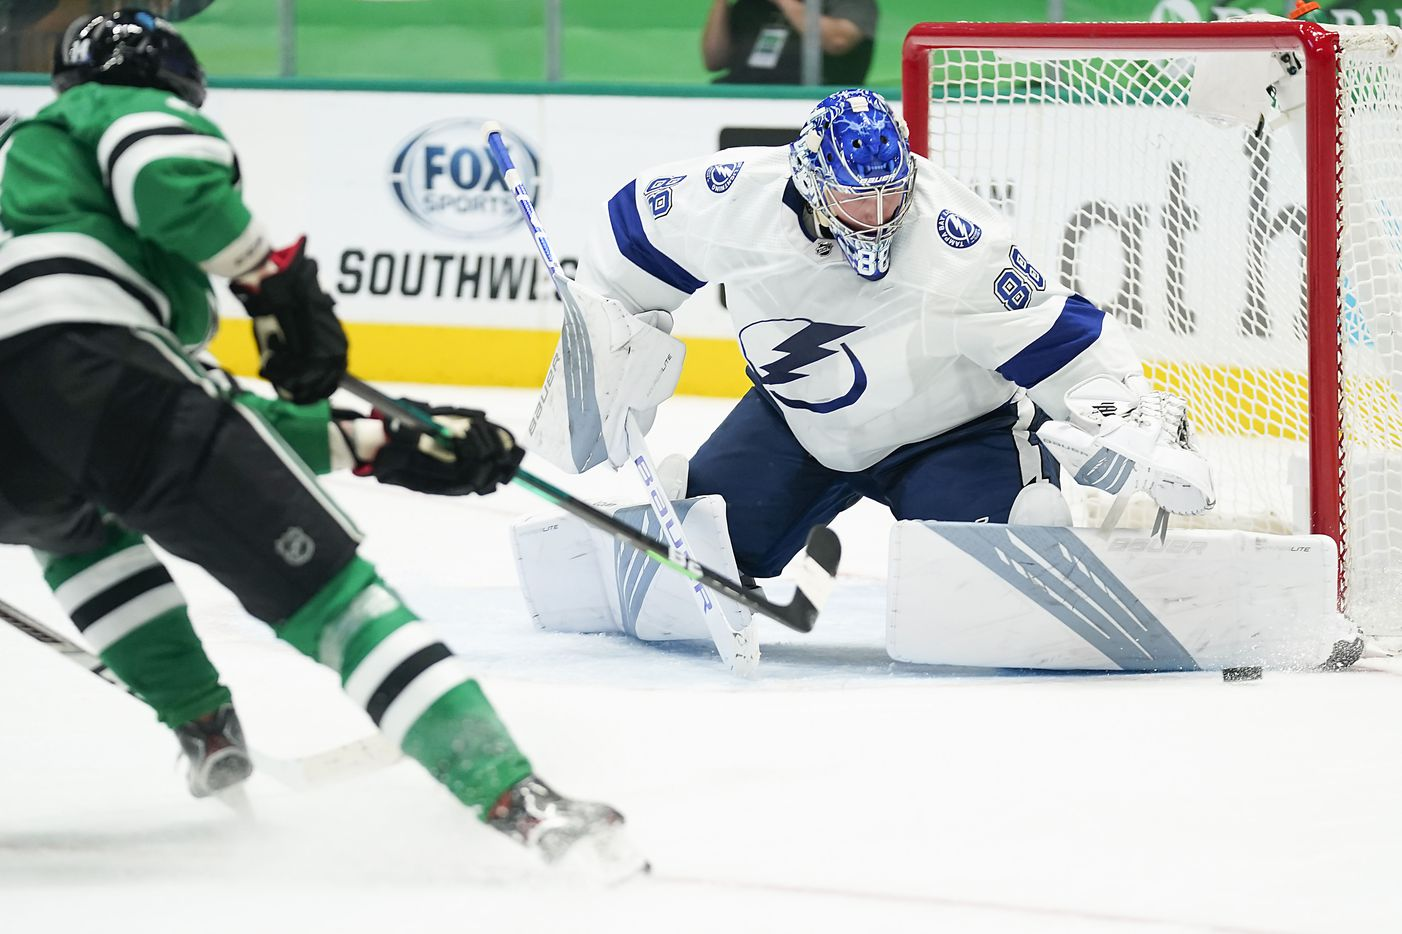 Tampa Bay Lightning goaltender Andrei Vasilevskiy (88) makes a save on a shot by Dallas Stars left wing Jamie Benn (14) during the third period of an NHL hockey game at the American Airlines Center on Thursday, March 25, 2021, in Dallas. The Stars won the game 4-3. (Smiley N. Pool/The Dallas Morning News)